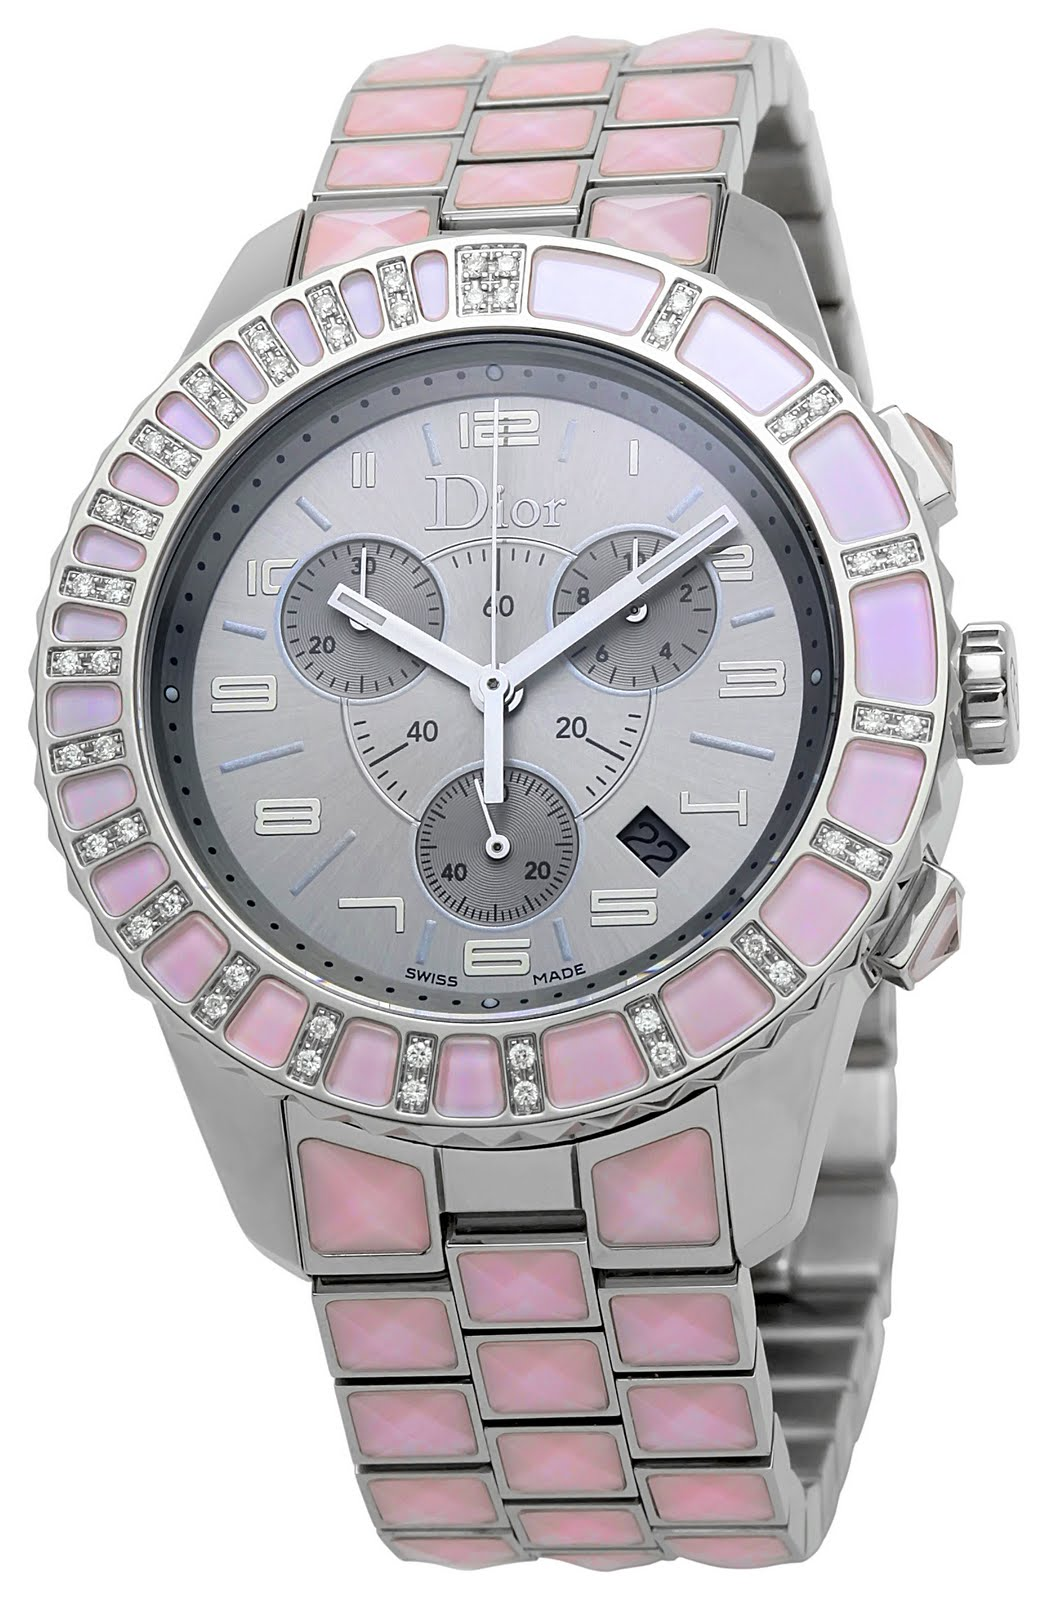 The jomashop blog charlize theron the christian dior raymond weil law suit for Christian dior watches